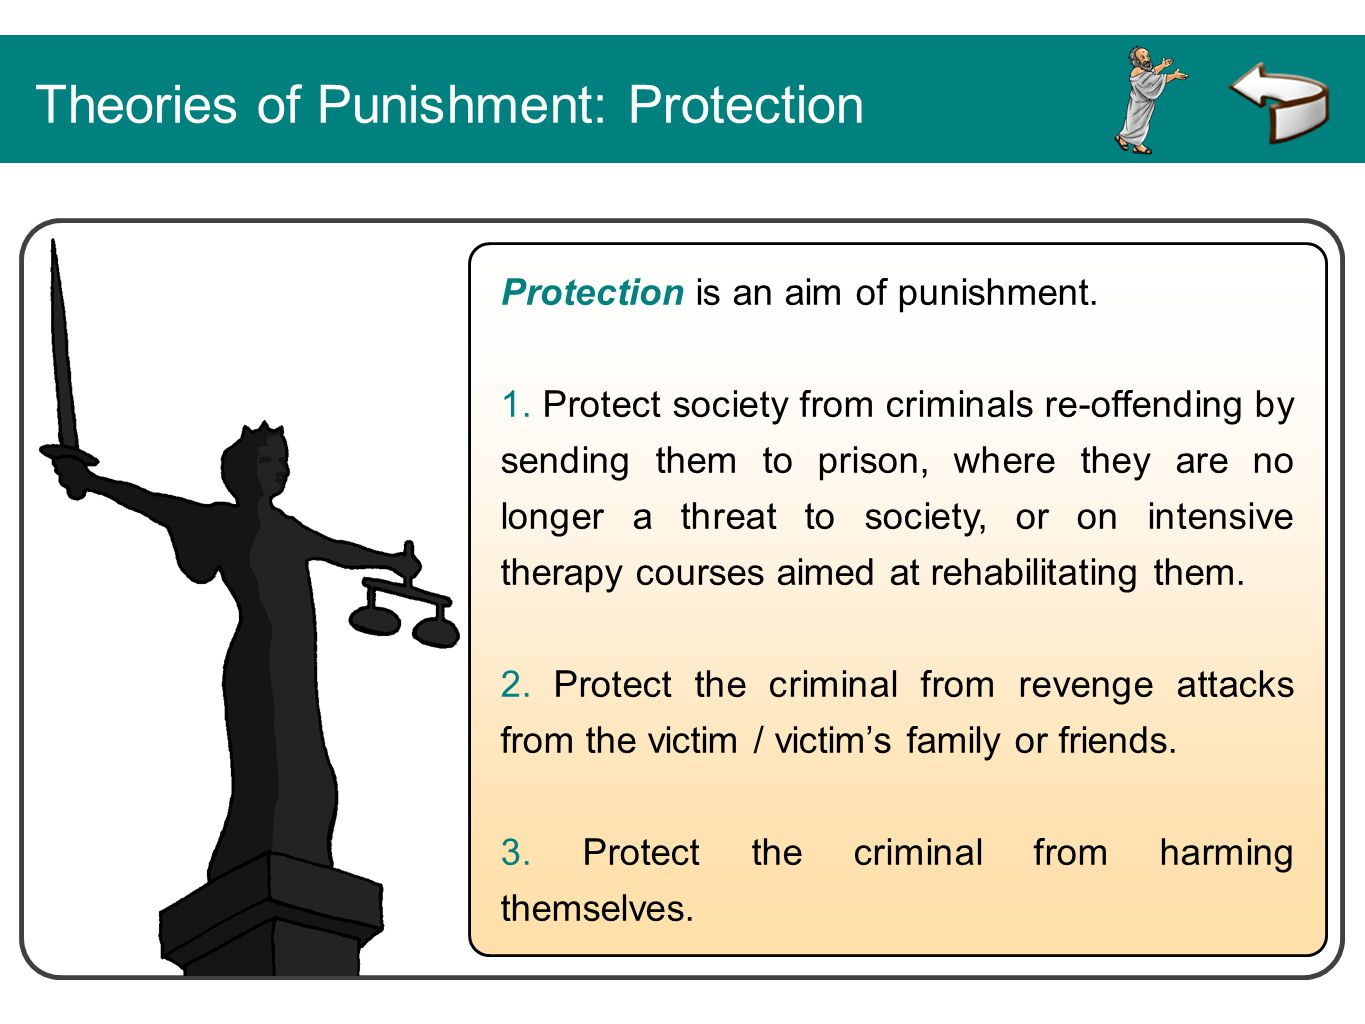 Theories of Punishment: Protection